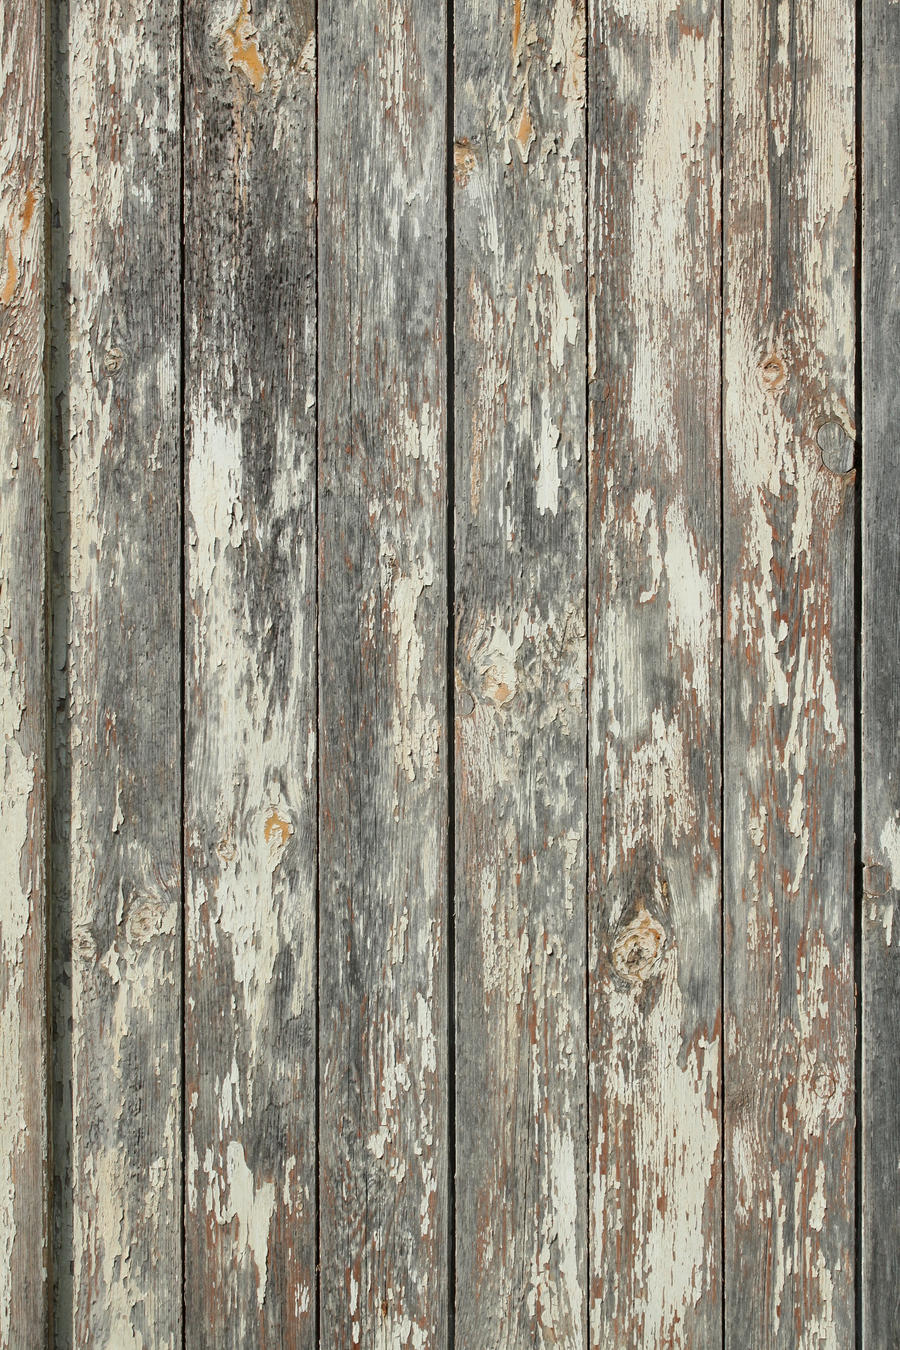 Wood Texture - 26